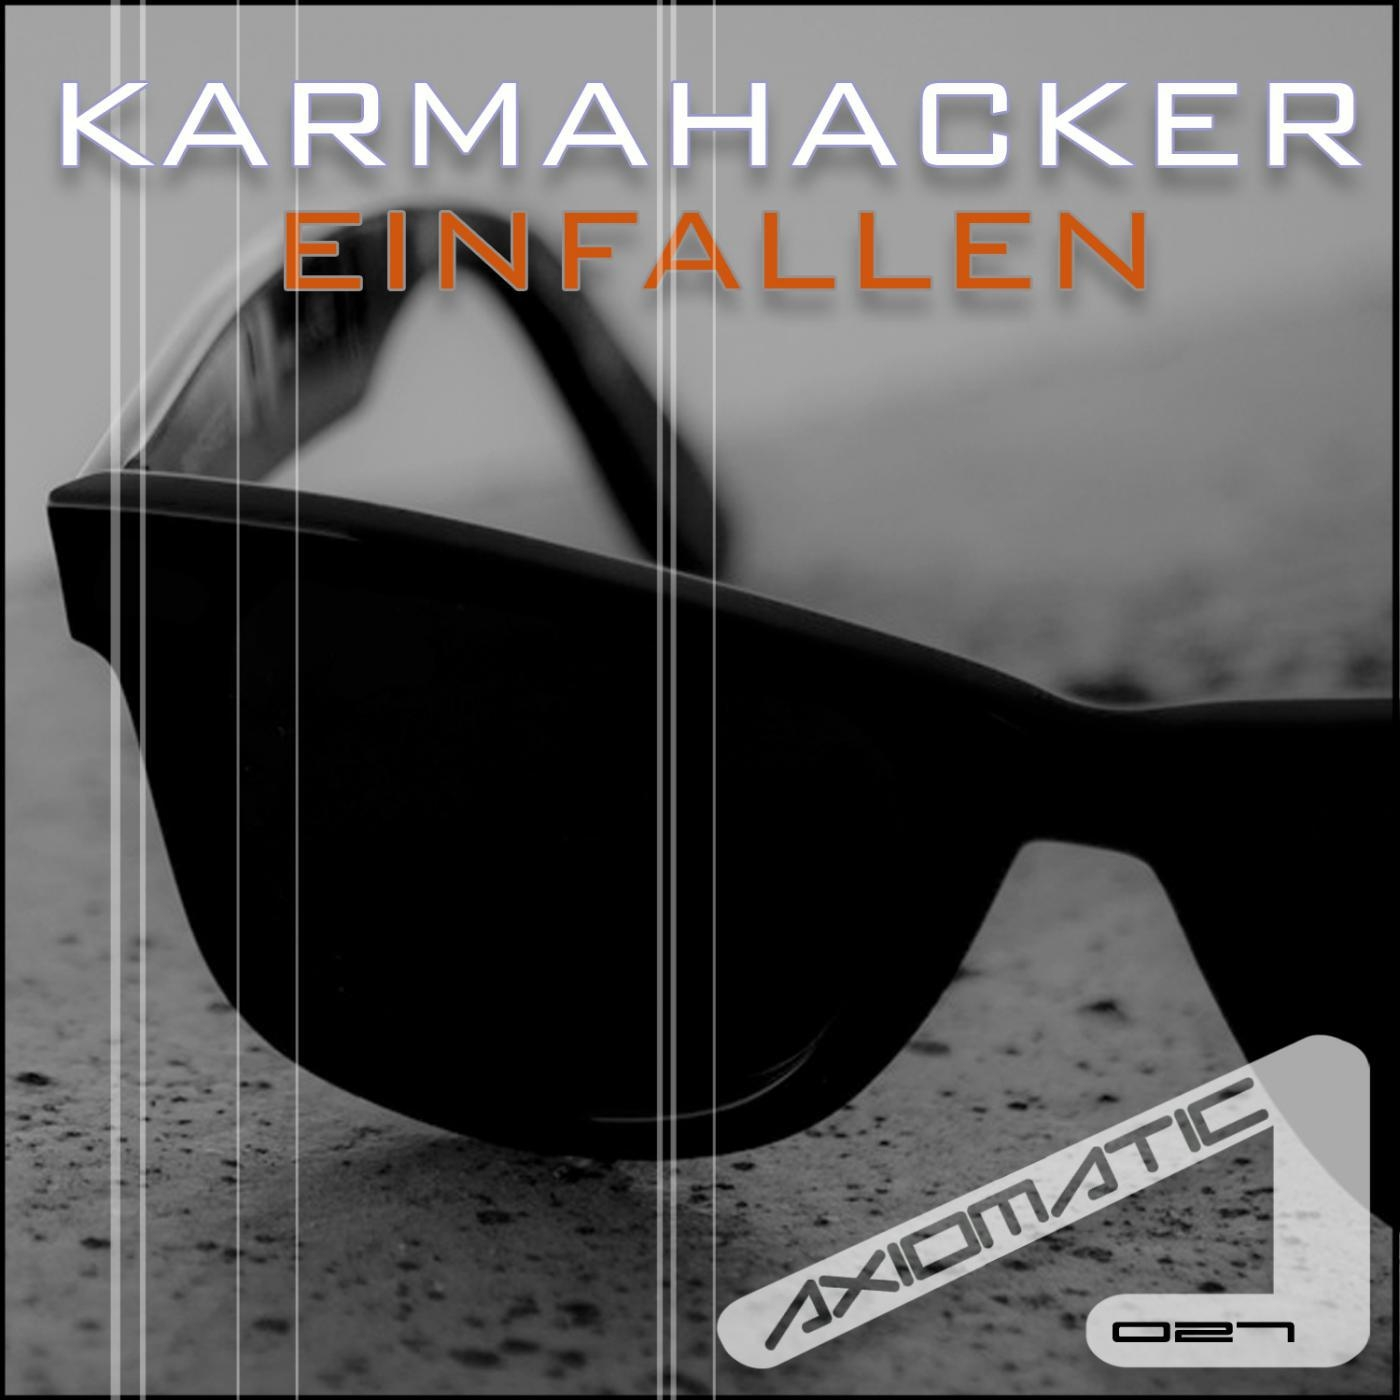 Karmahacker - Shiny Things (Version II) (Original mix)